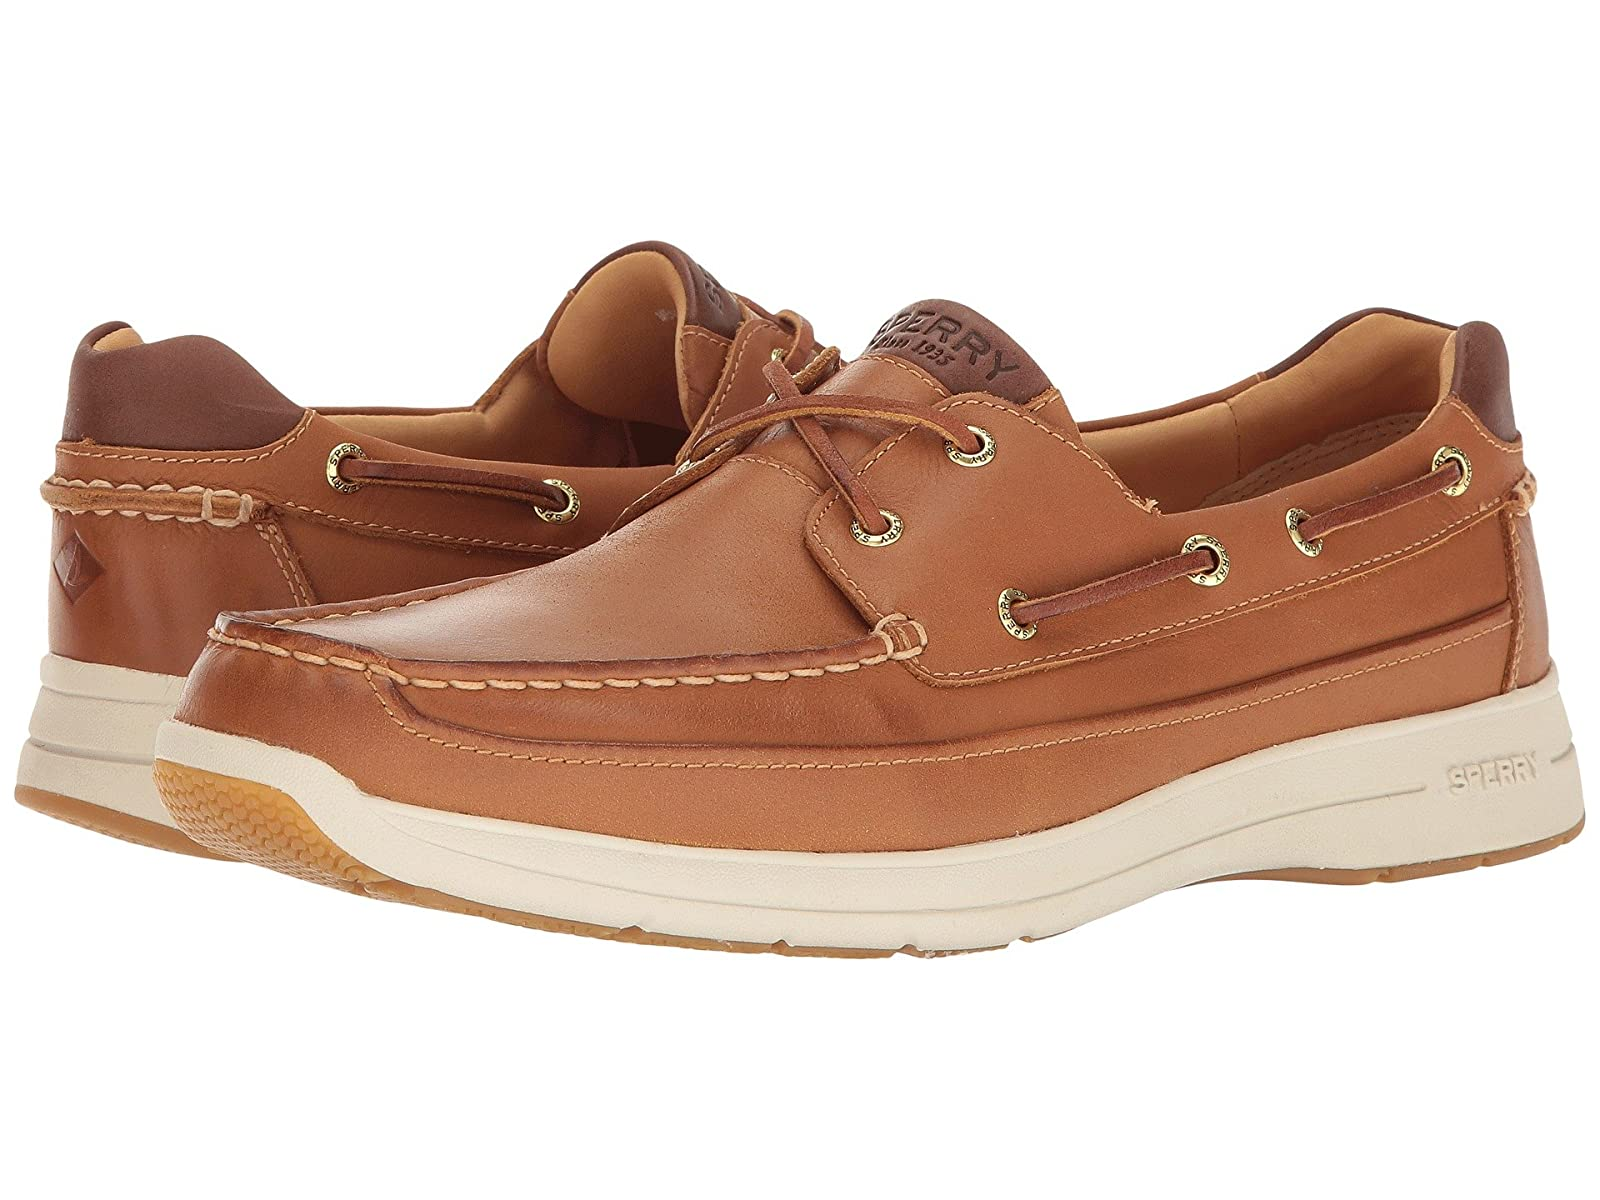 Sperry Gold Cup Ultra 2-Eye w/ ASVSelling fashionable and eye-catching shoes